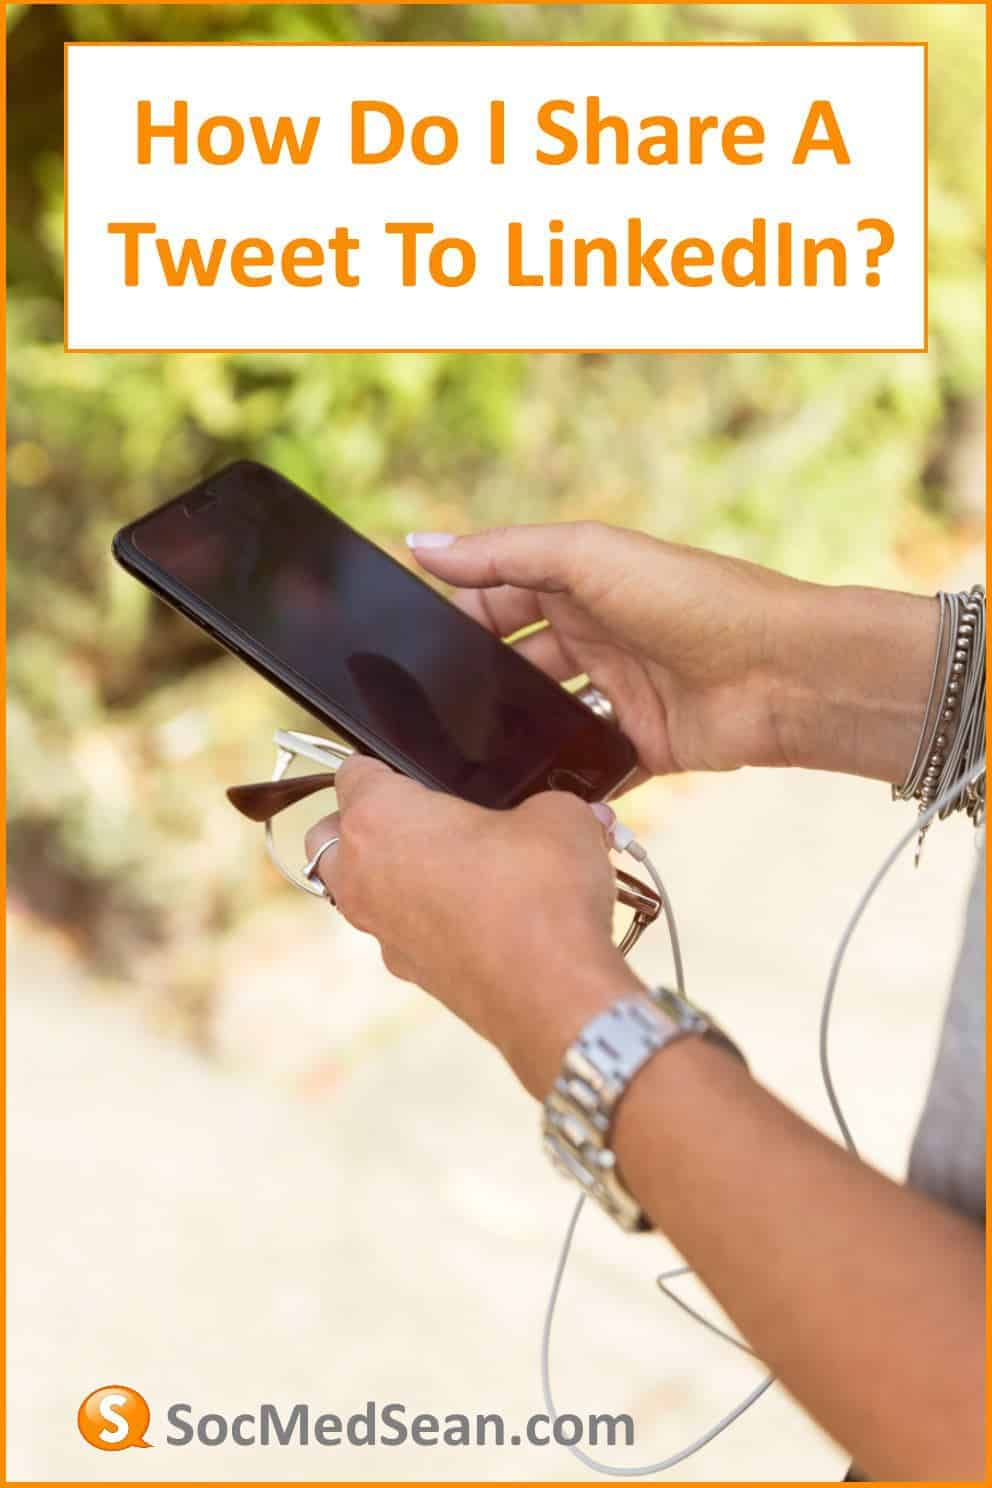 Tips for sharing a tweet from Twitter to LinkedIn using either the browser or mobile app